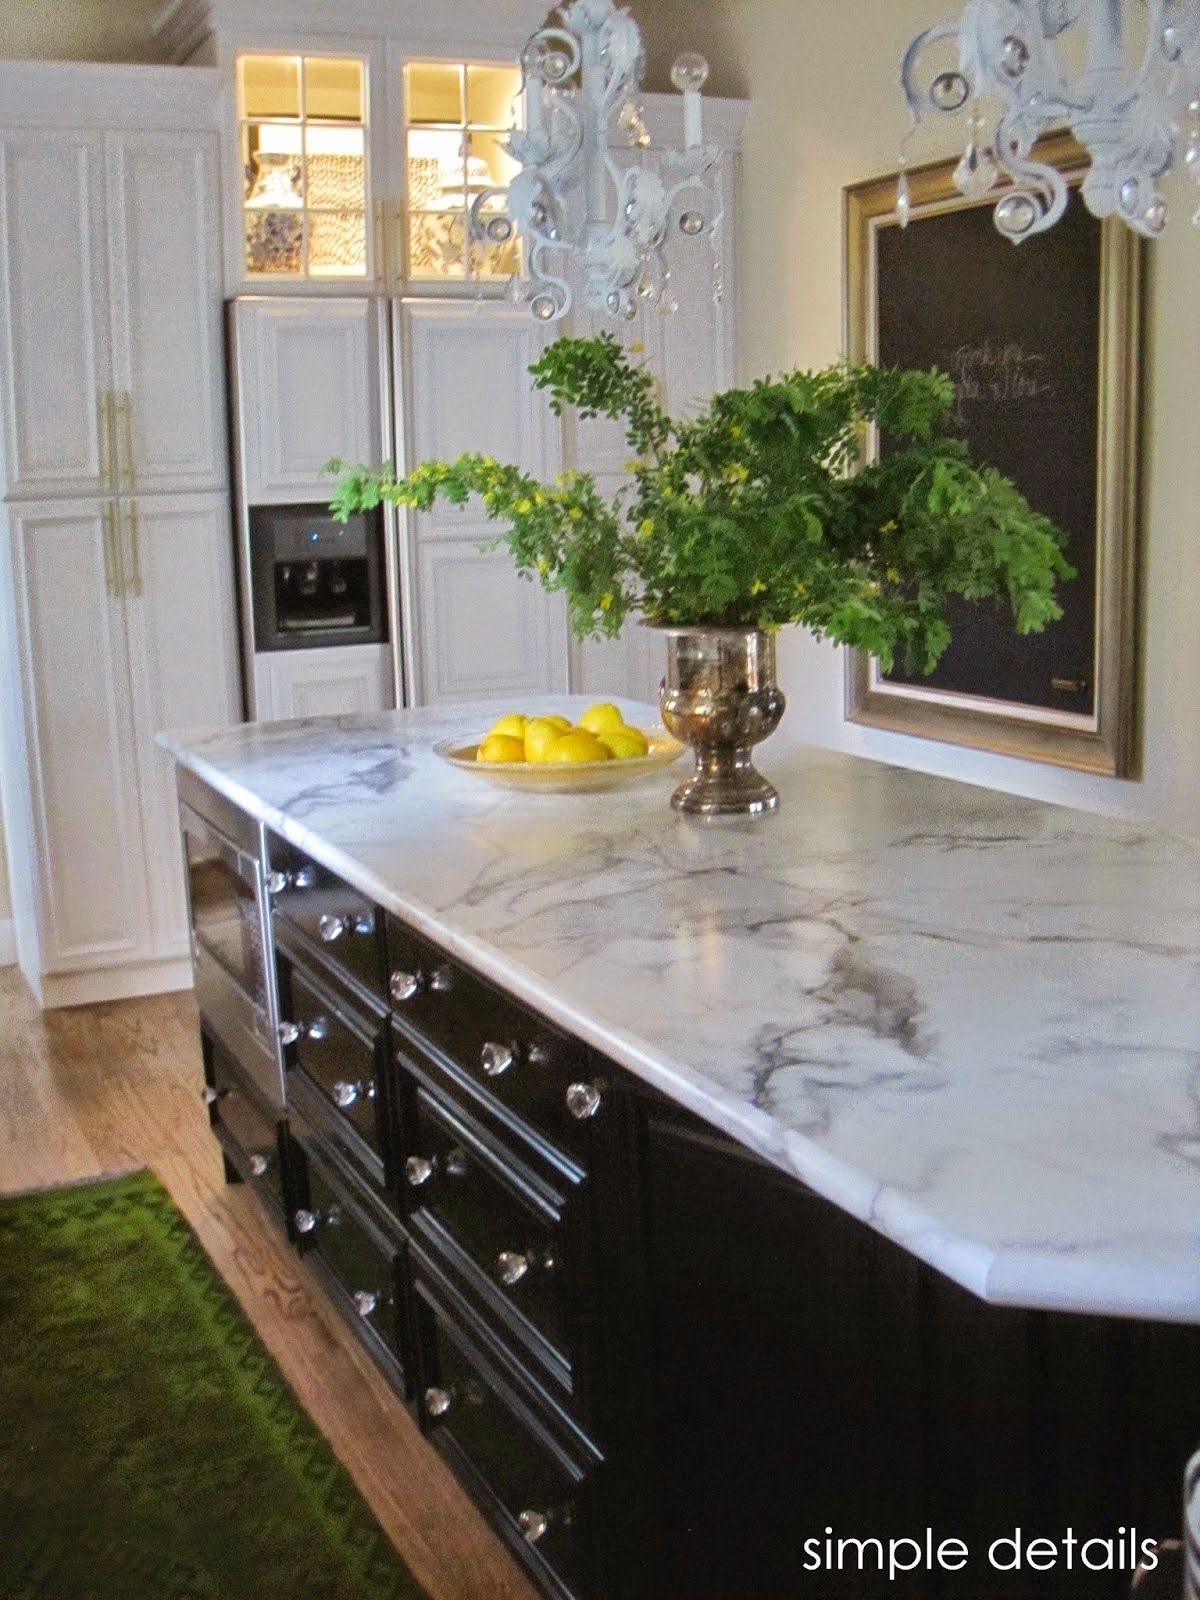 Formica 180fx and arborite laminate countertops give the look of soapstone and marble typhoon calacutta are affordable update ideas for kitchen or